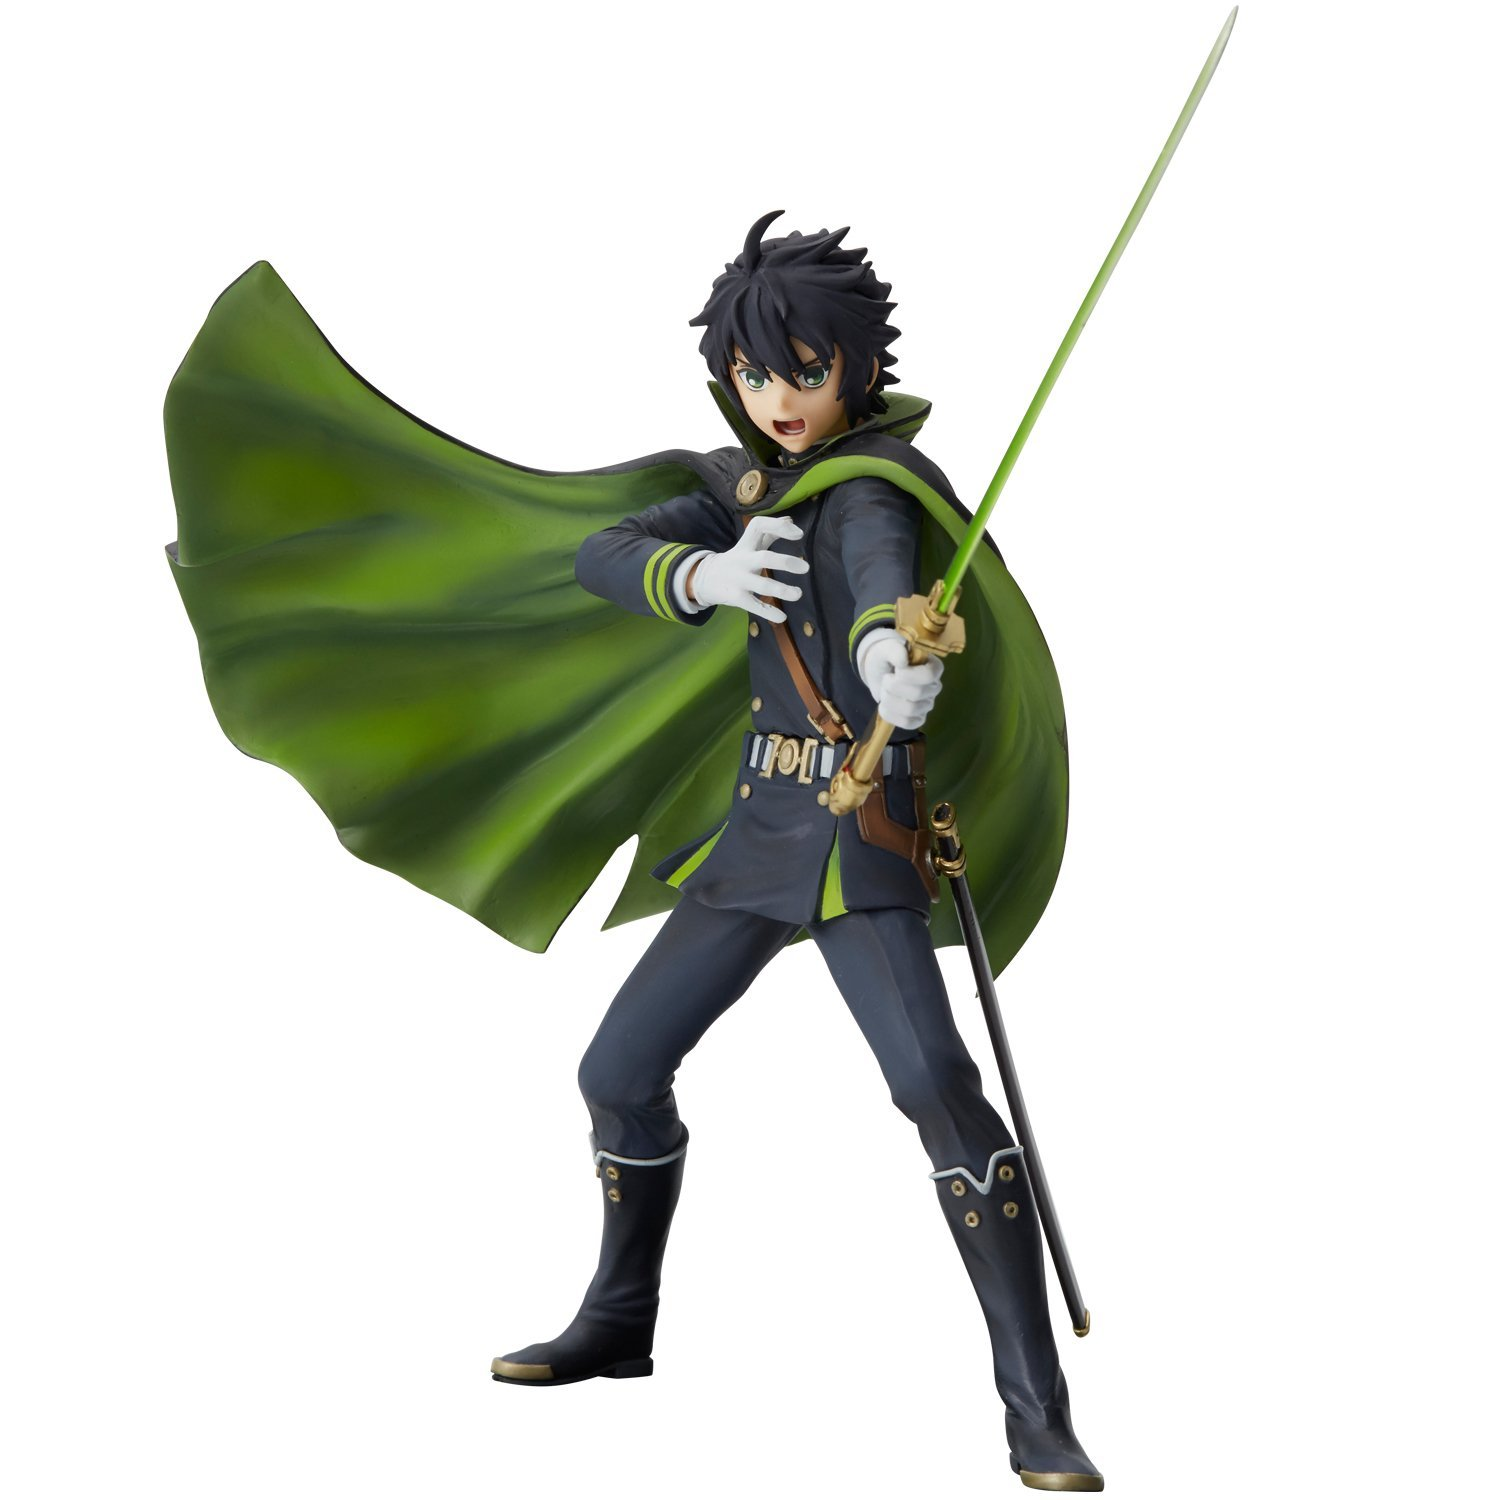 Seraph of the End Union Creative mensHdge Technical Statue No.24 Yuichiro Hyakuya Figure Rinkya